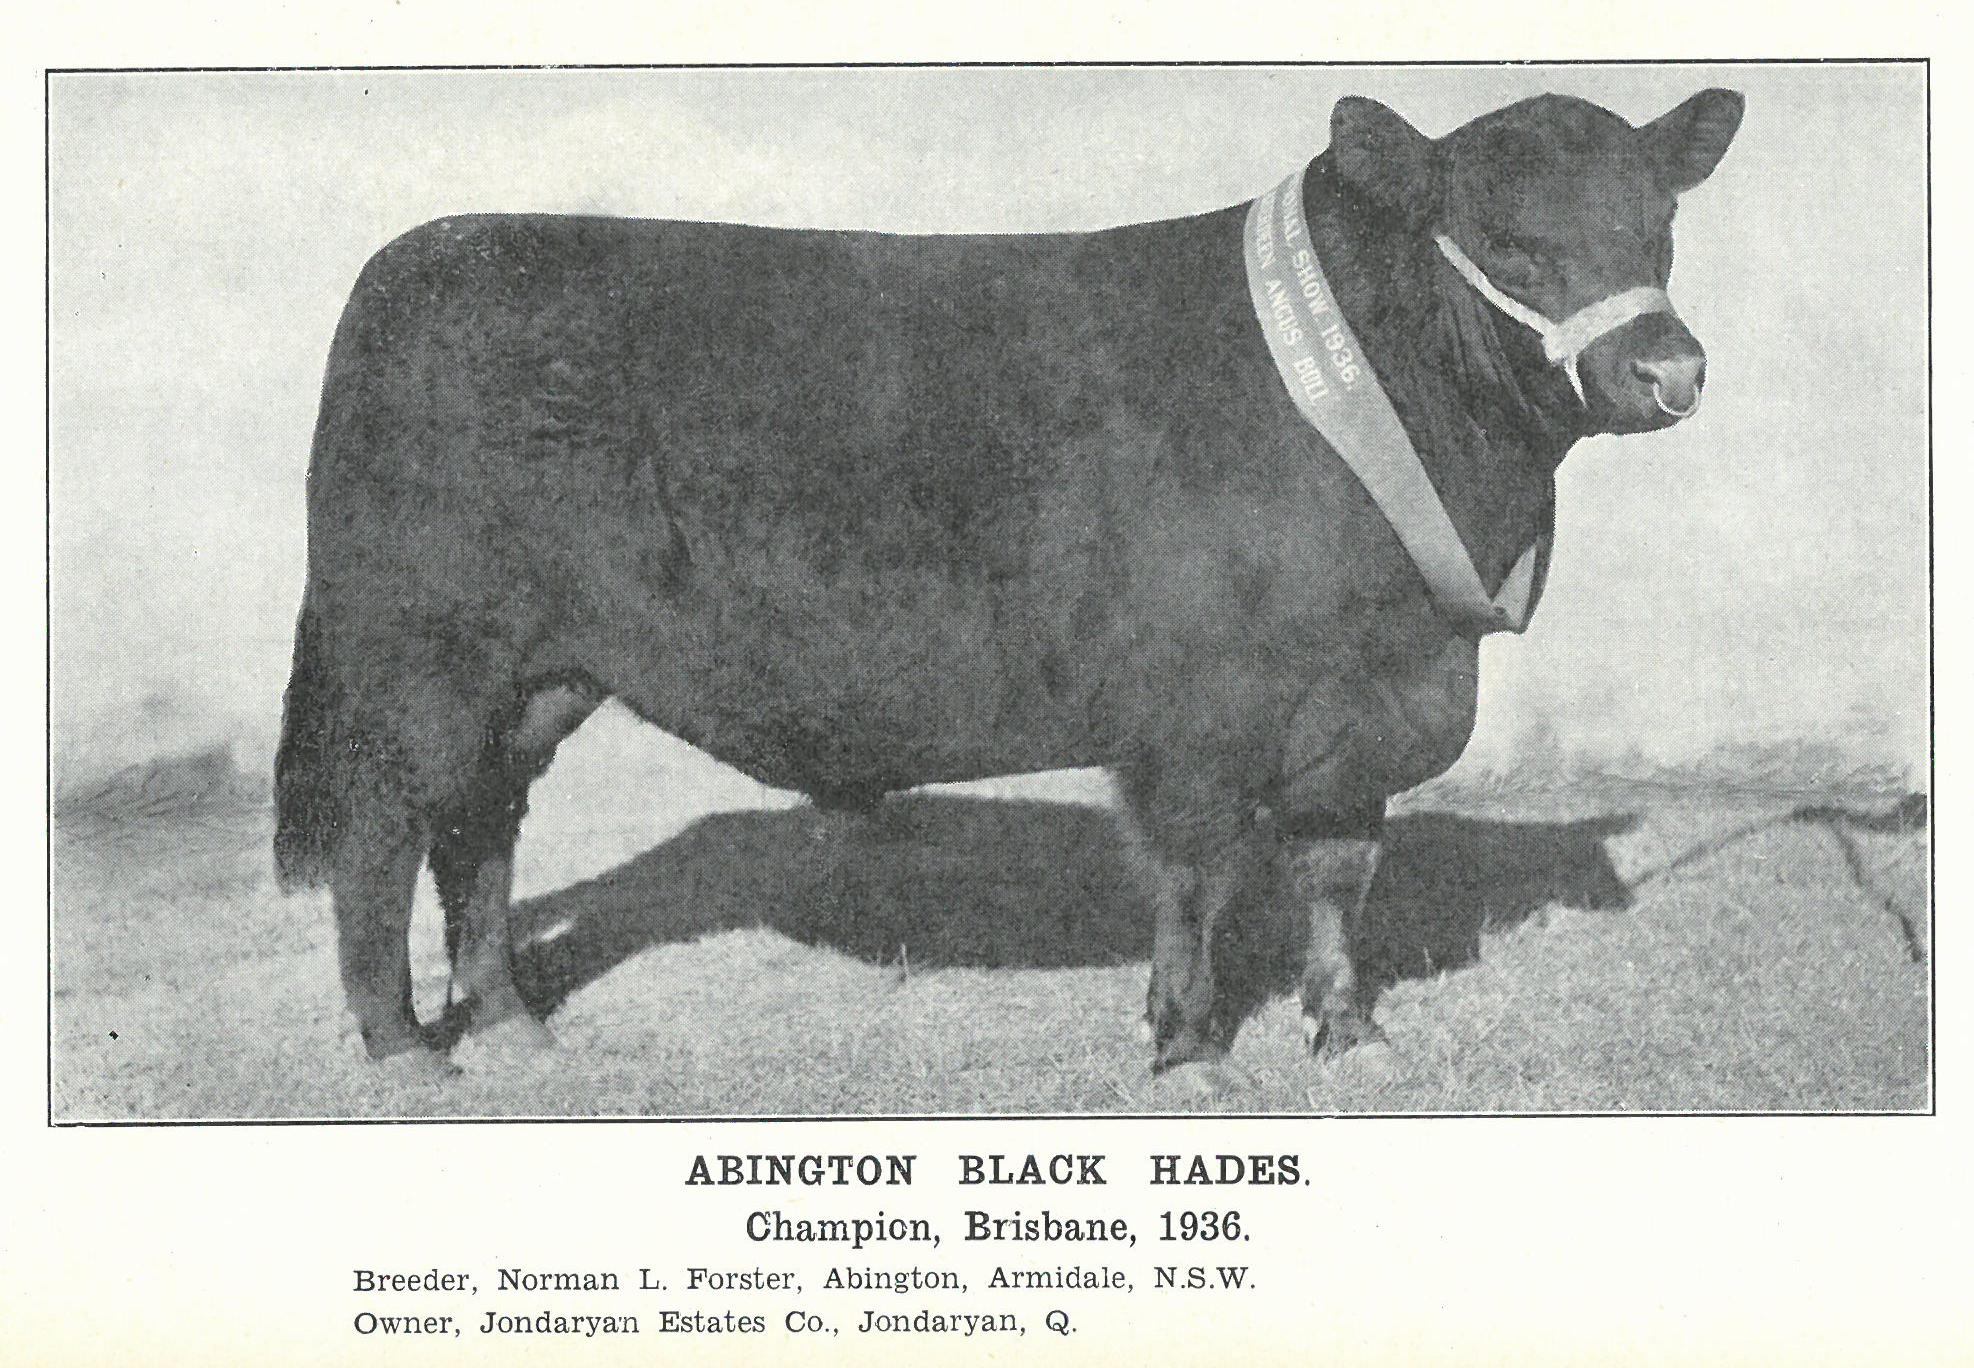 Abington Black Hades